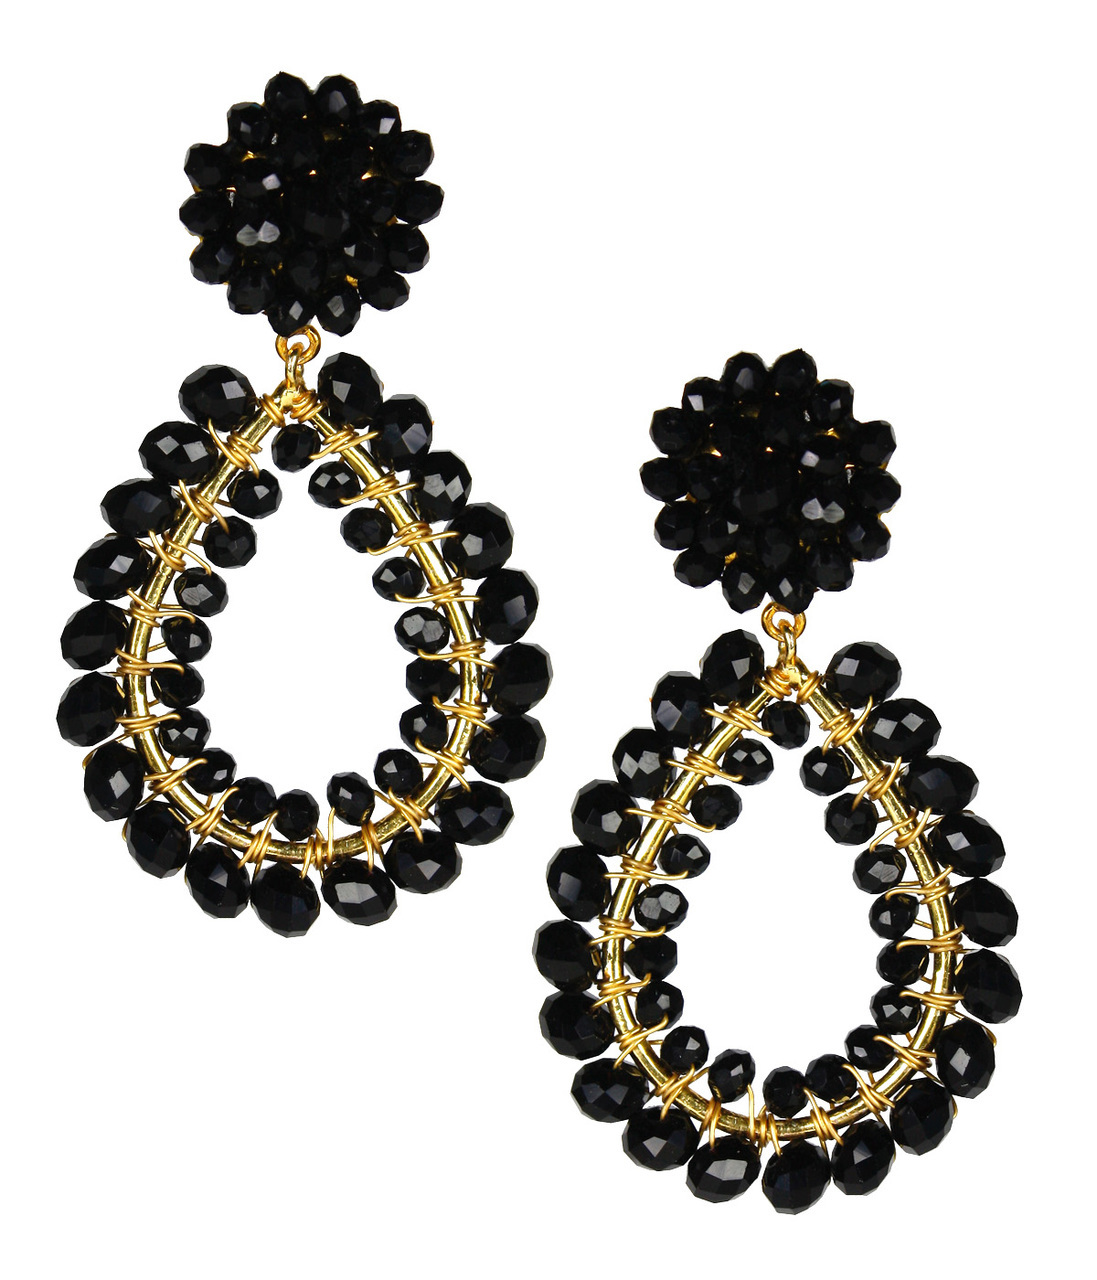 3d860e978 Lisi Lerch Margo Black Earrings | HAUTEheadquarters